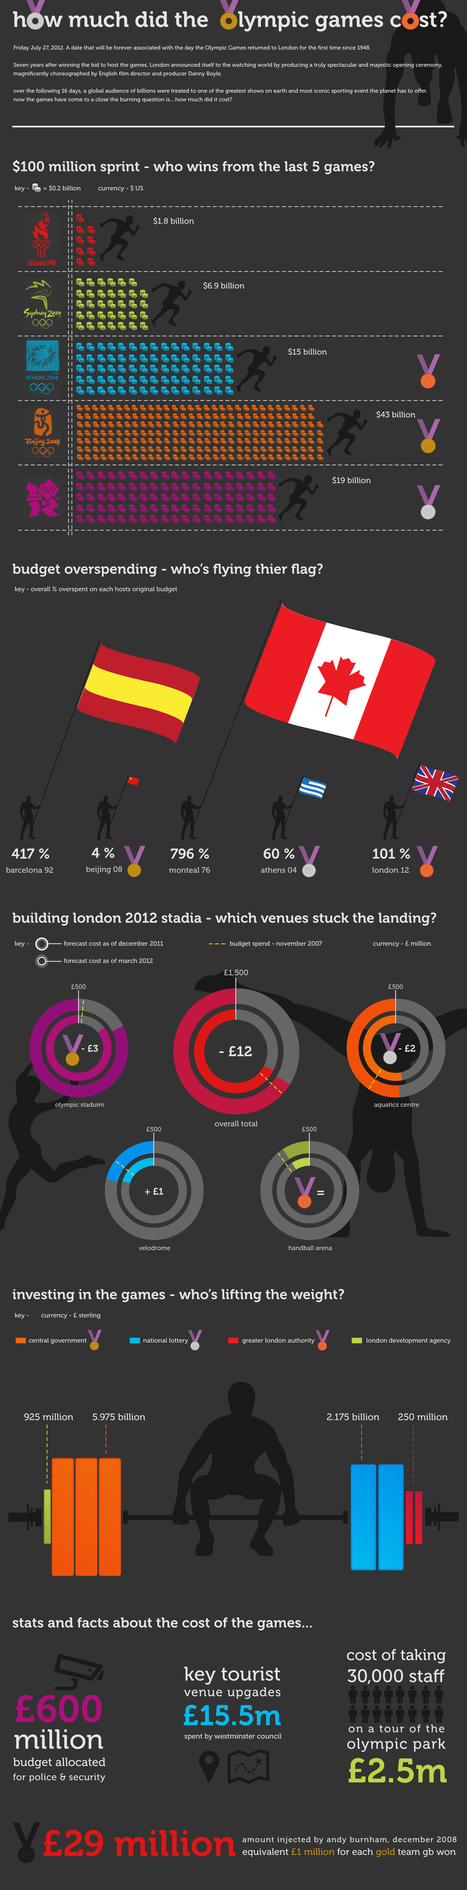 How Much Did the Olympics Cost? | IB&A Level Geography | Scoop.it